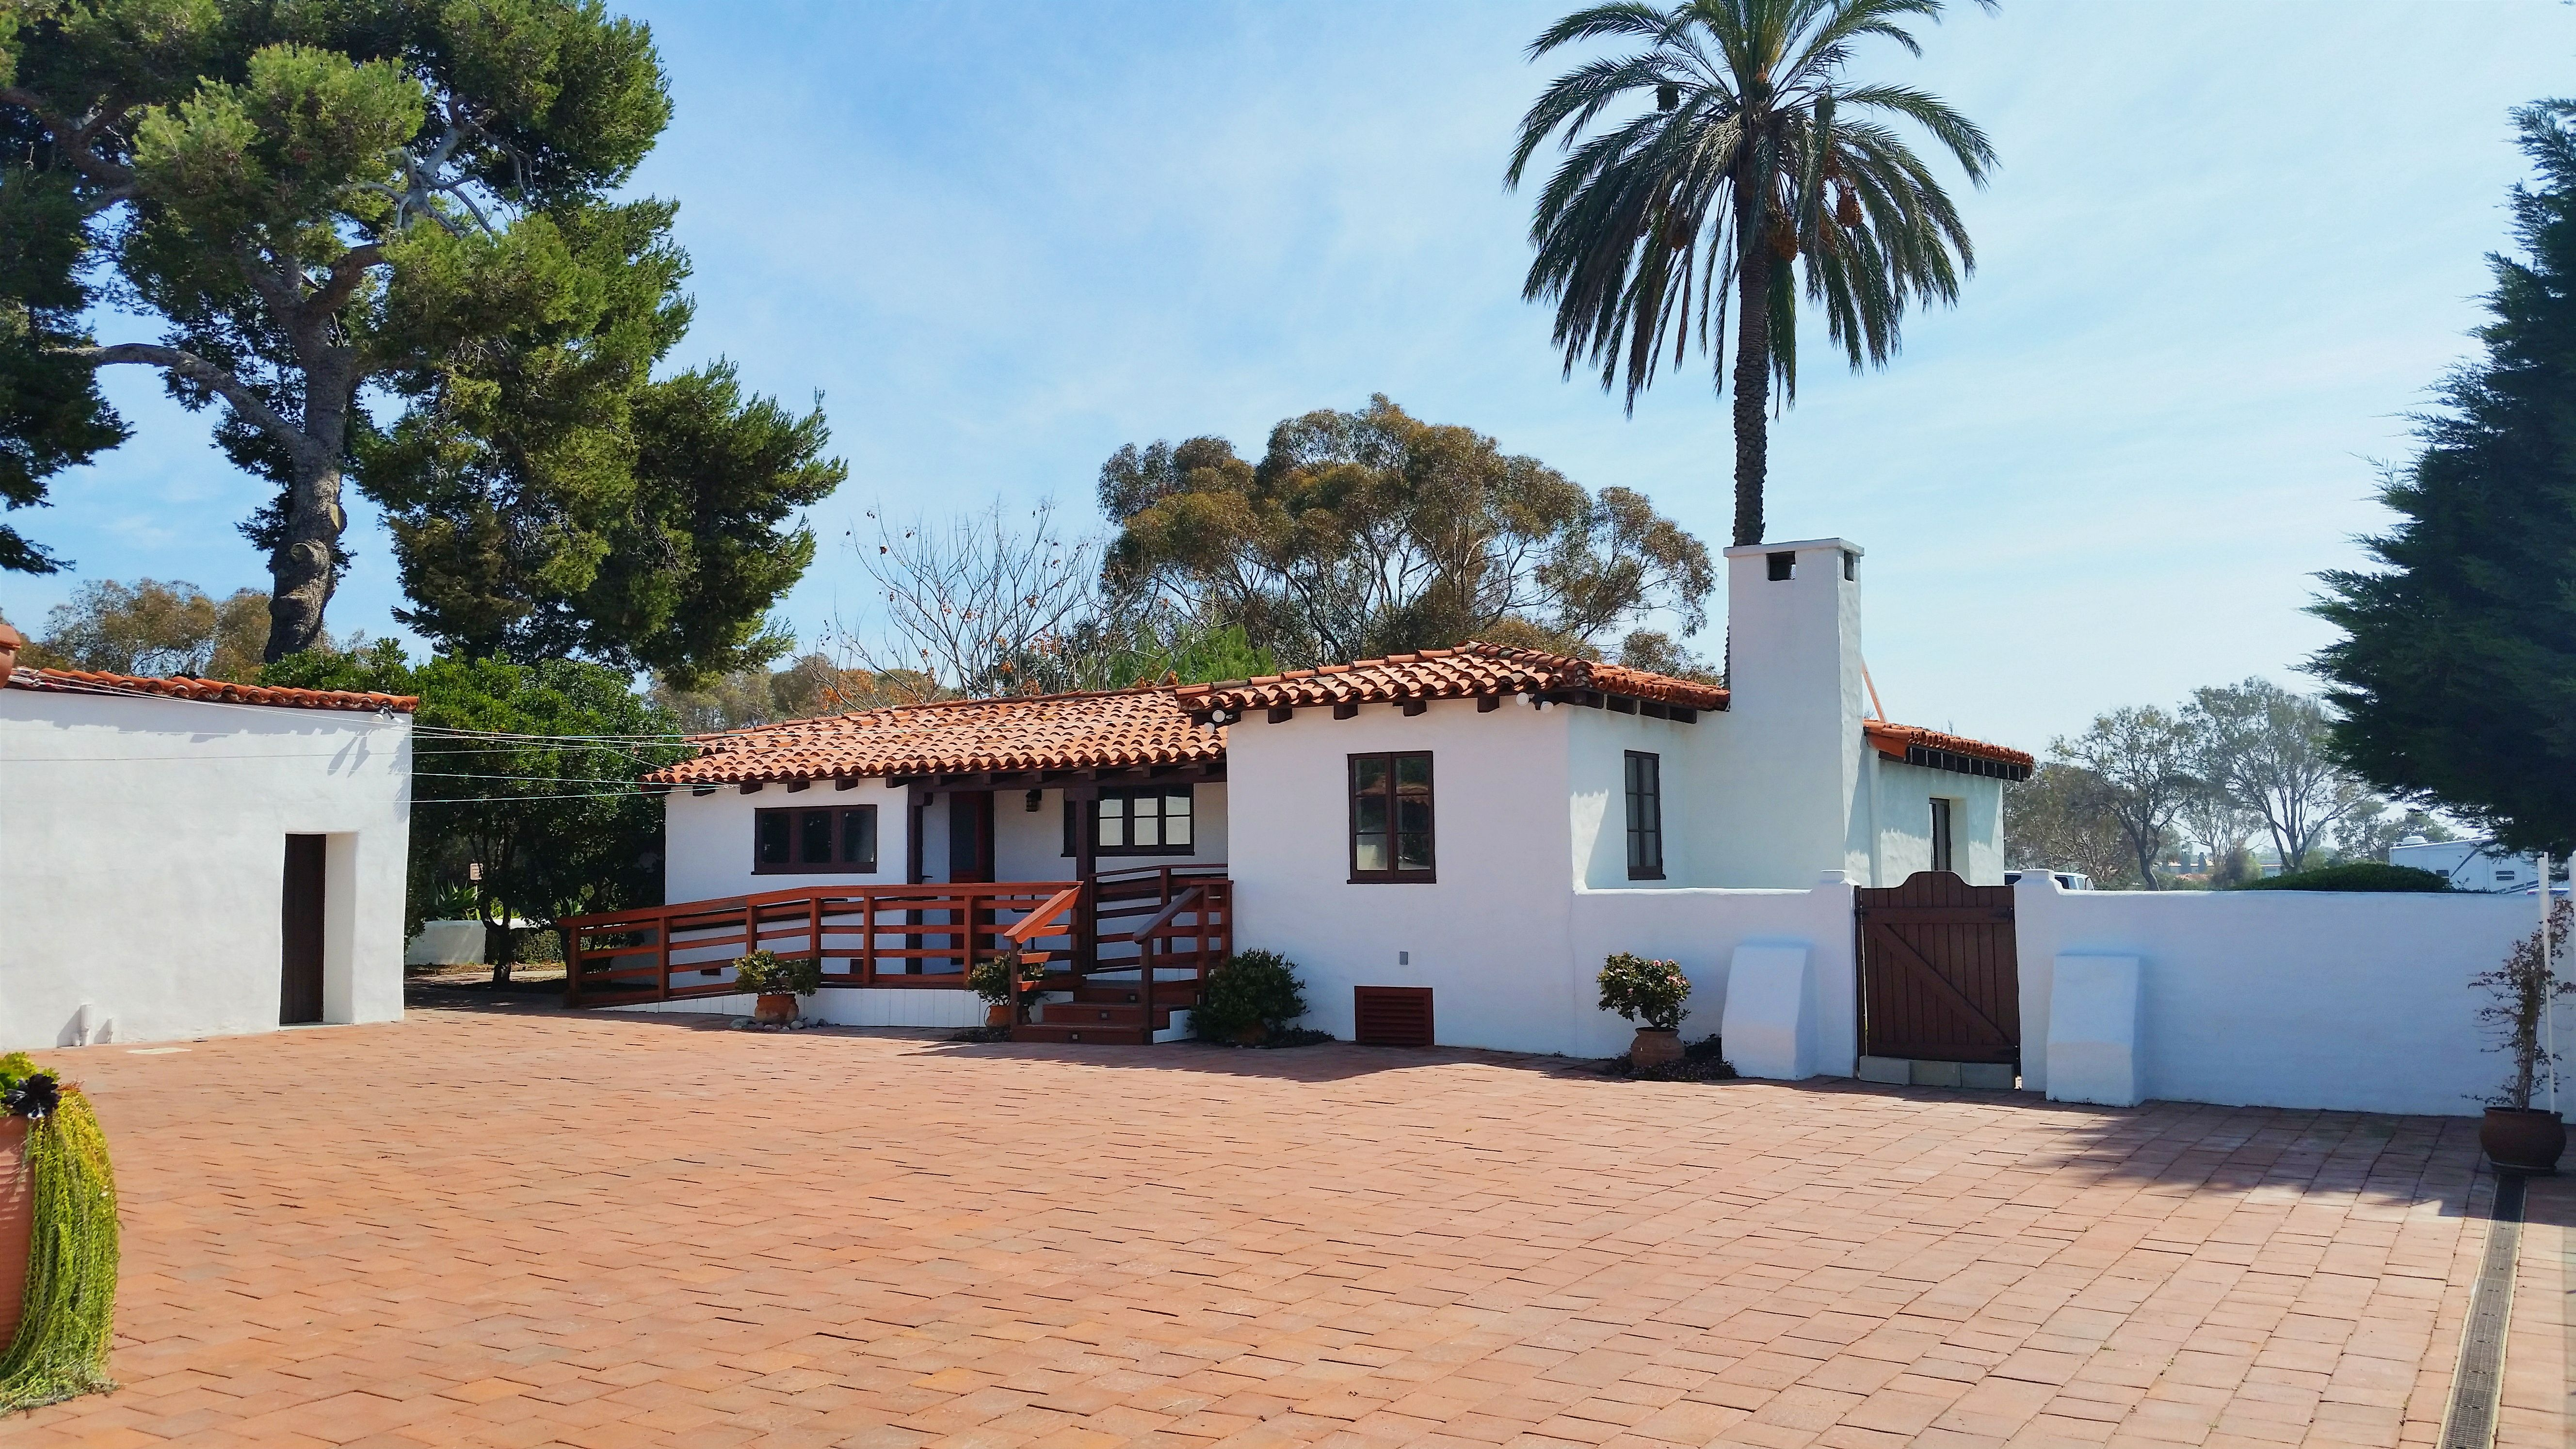 Historic Cottage At San Clemente State Beach Receptions Of Up To 150 People Fees Range From 3 000 4 Insurance Lighting Security And Parking